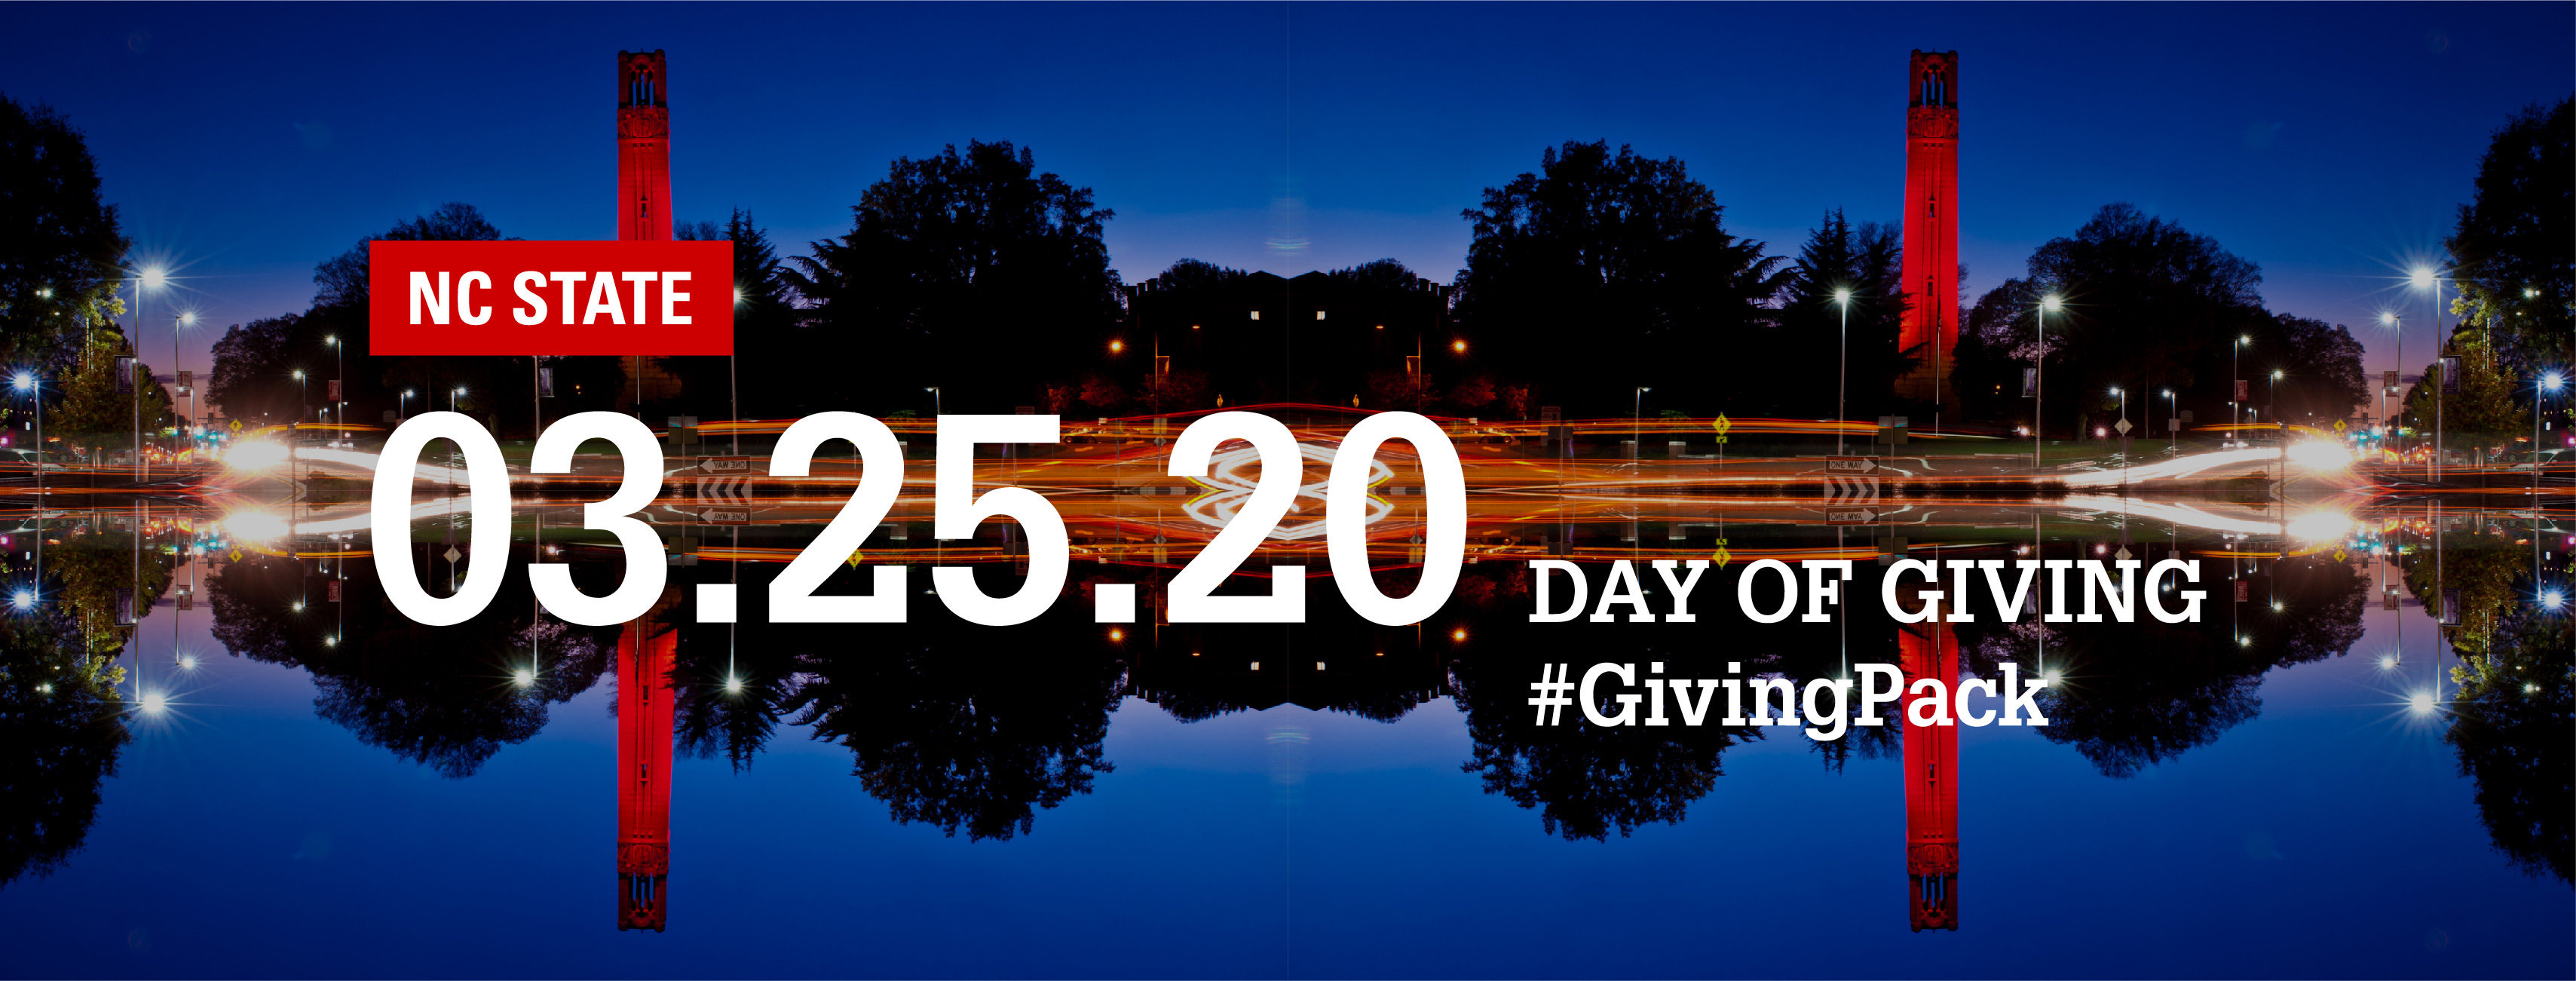 Facebook cover photo with image of the belltower at night from the roundabout and text reading NC State 03.25.20 Day of Giving Hashtag Giving Pack